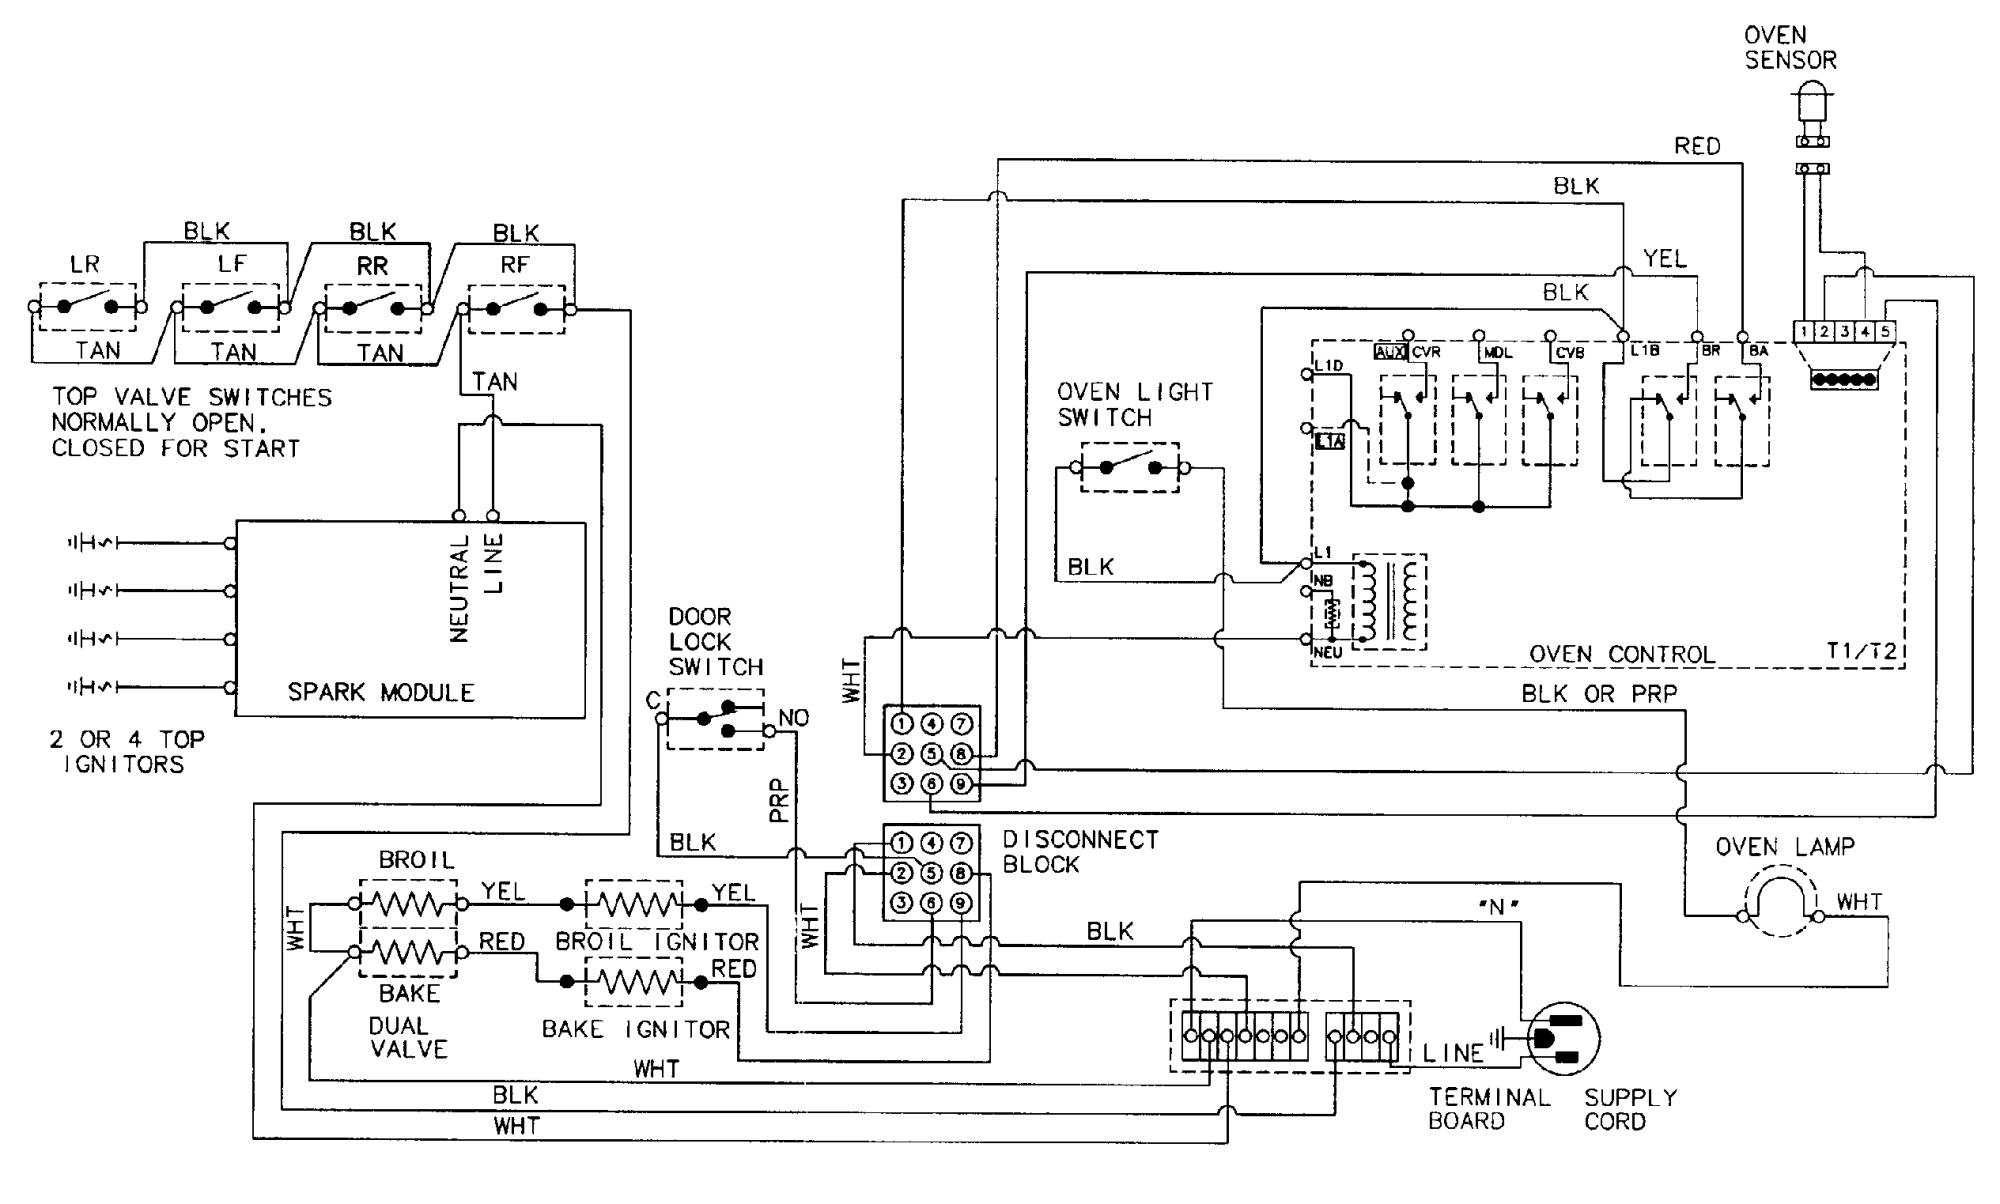 hight resolution of contro gas oven wiring diagram simple wiring schema oven wiring diagram ssr contr gas oven wiring